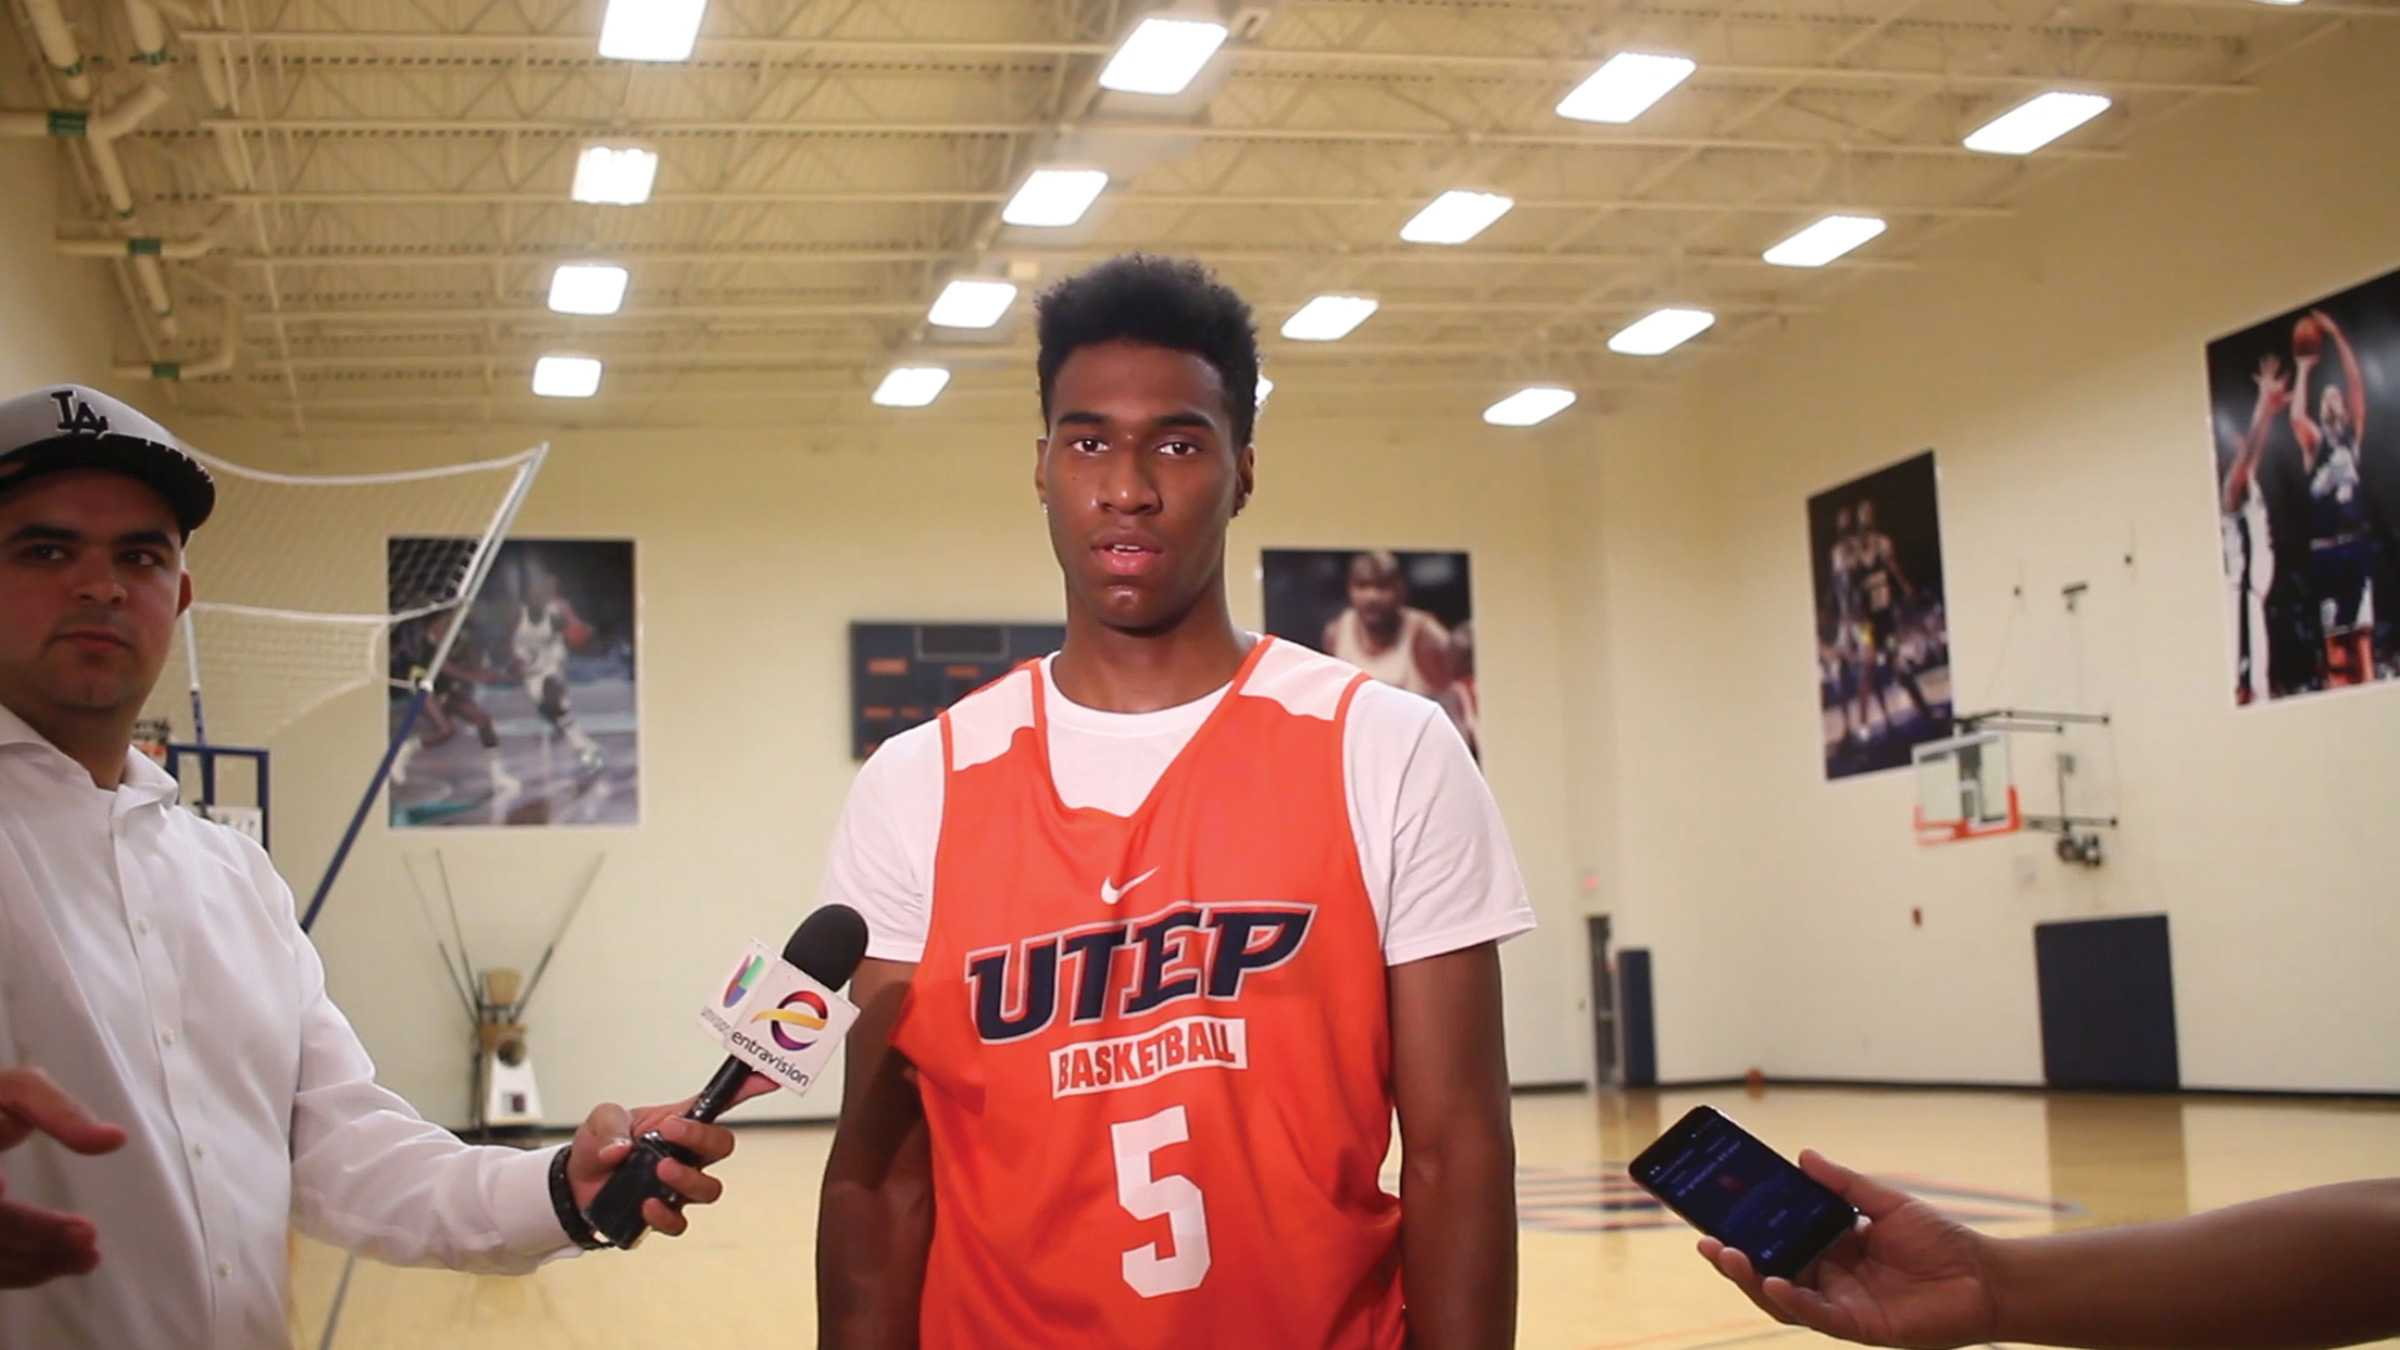 Freshman guard Chris Barnes will be a new addition to the men's basketball team roster.